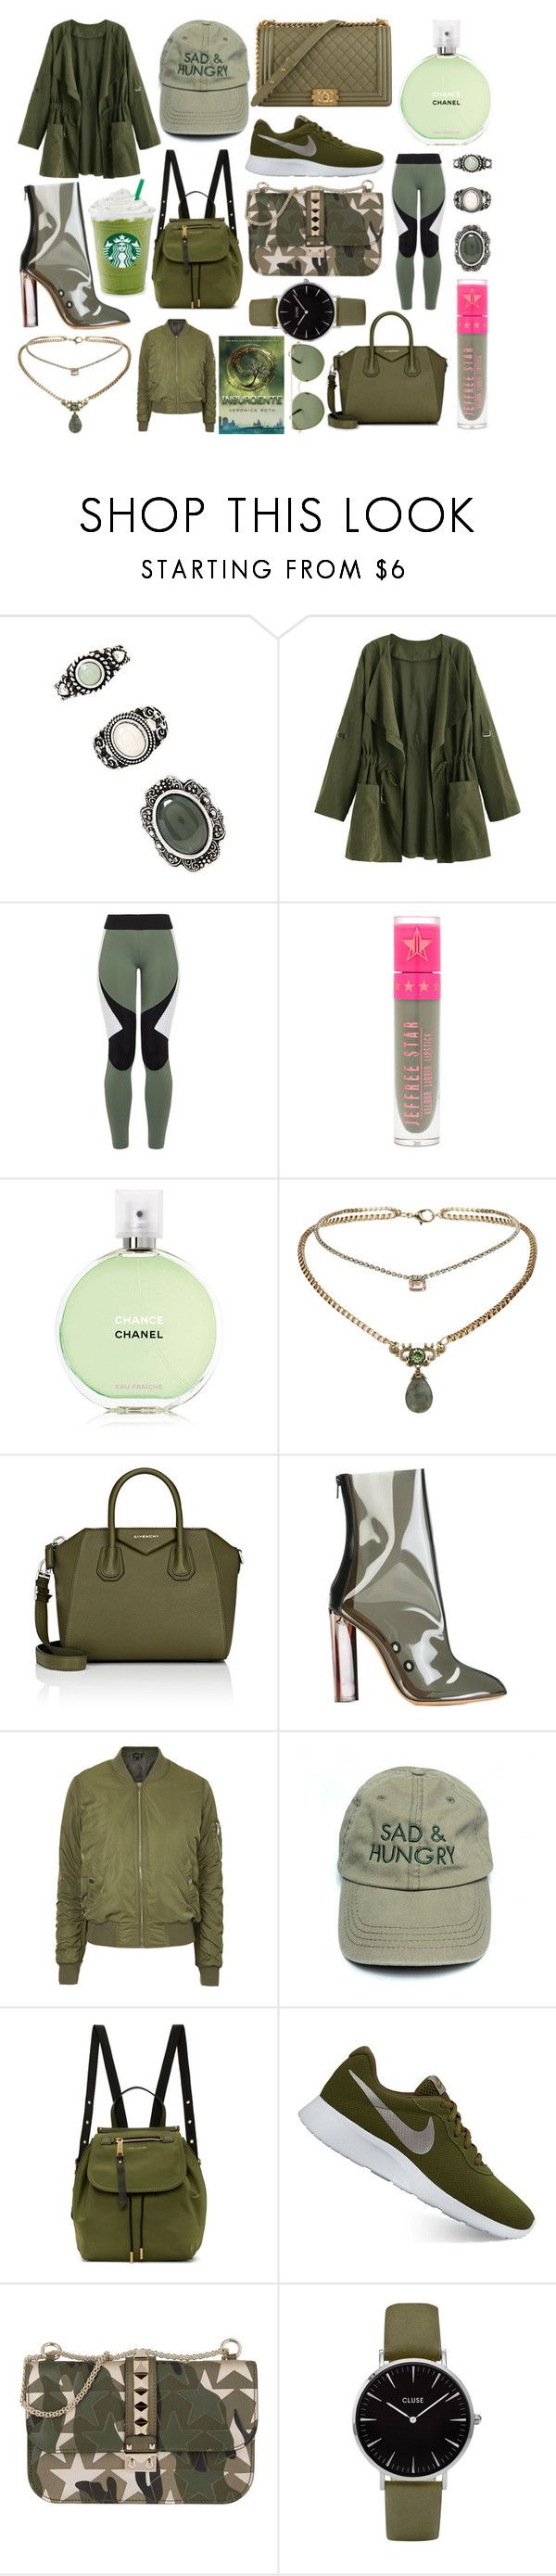 """""""Hunter Green."""" by plaraa on Polyvore featuring moda, Forever 21, Charli Cohen, Jeffree Star, Chanel, Topshop, Givenchy, adidas Originals, Marc Jacobs y NIKE"""